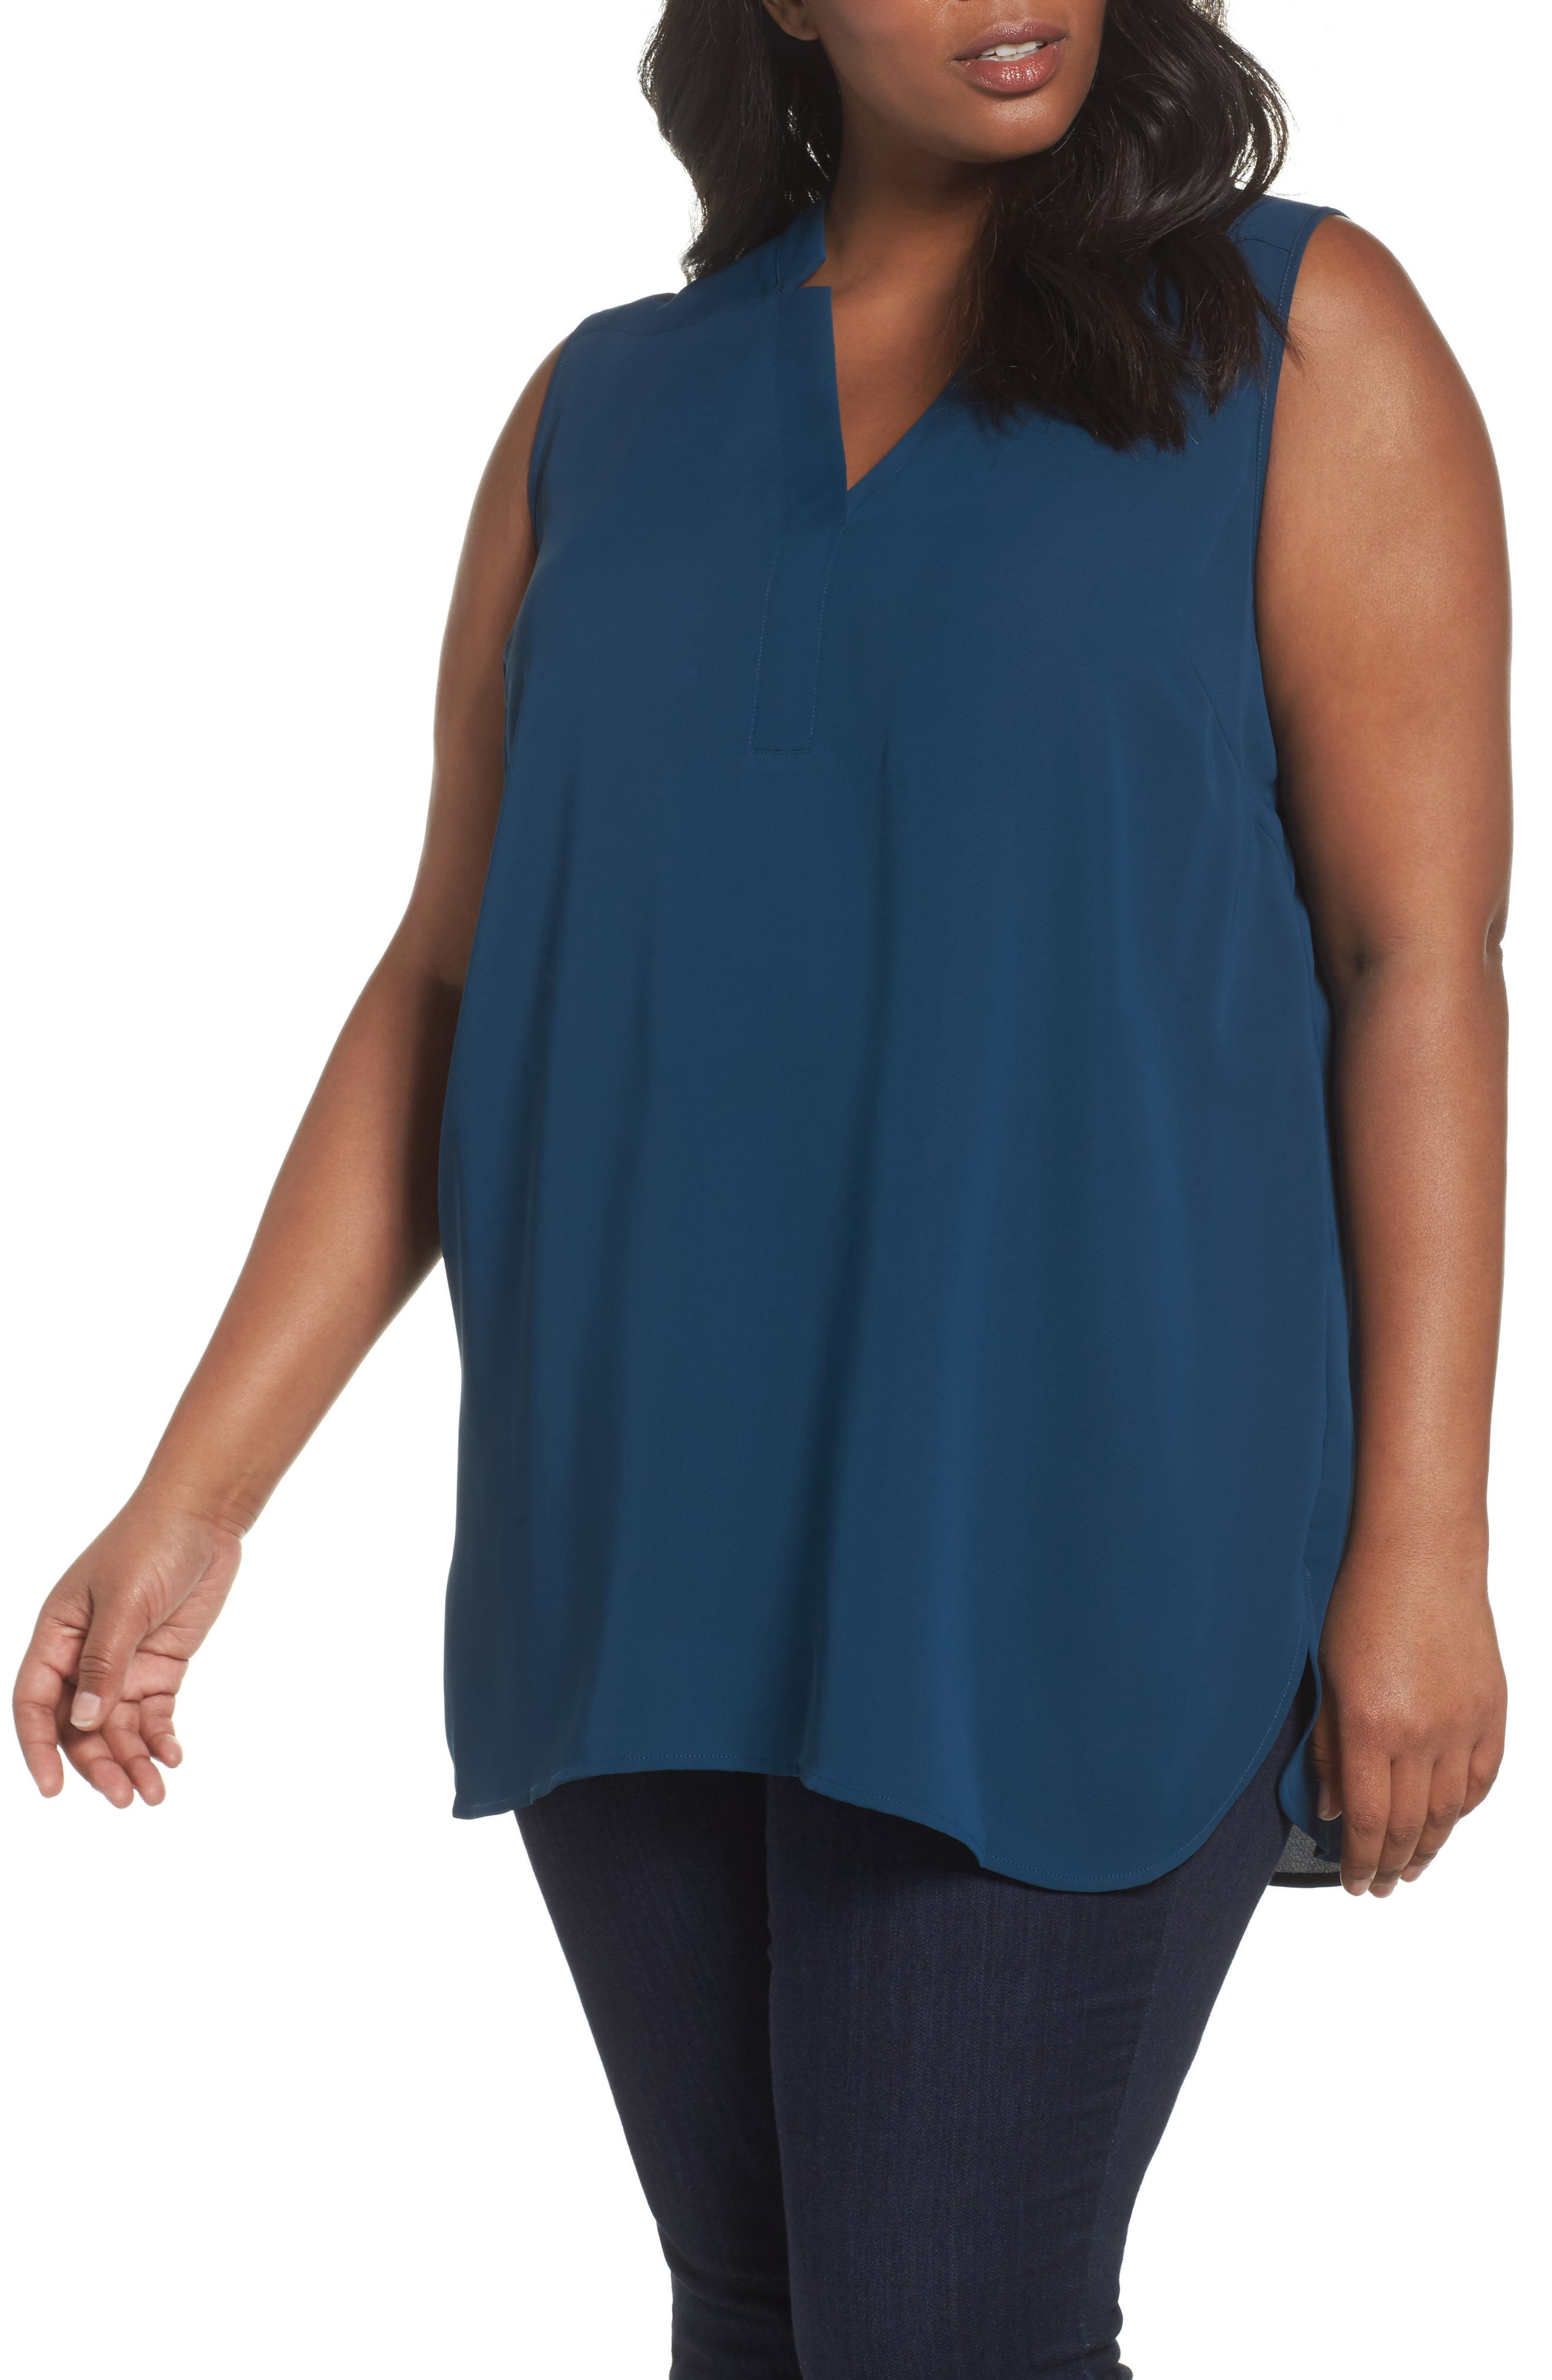 Alternate Image 1 Selected - NIC+ZOE Forget Me Not Top (Plus Size)